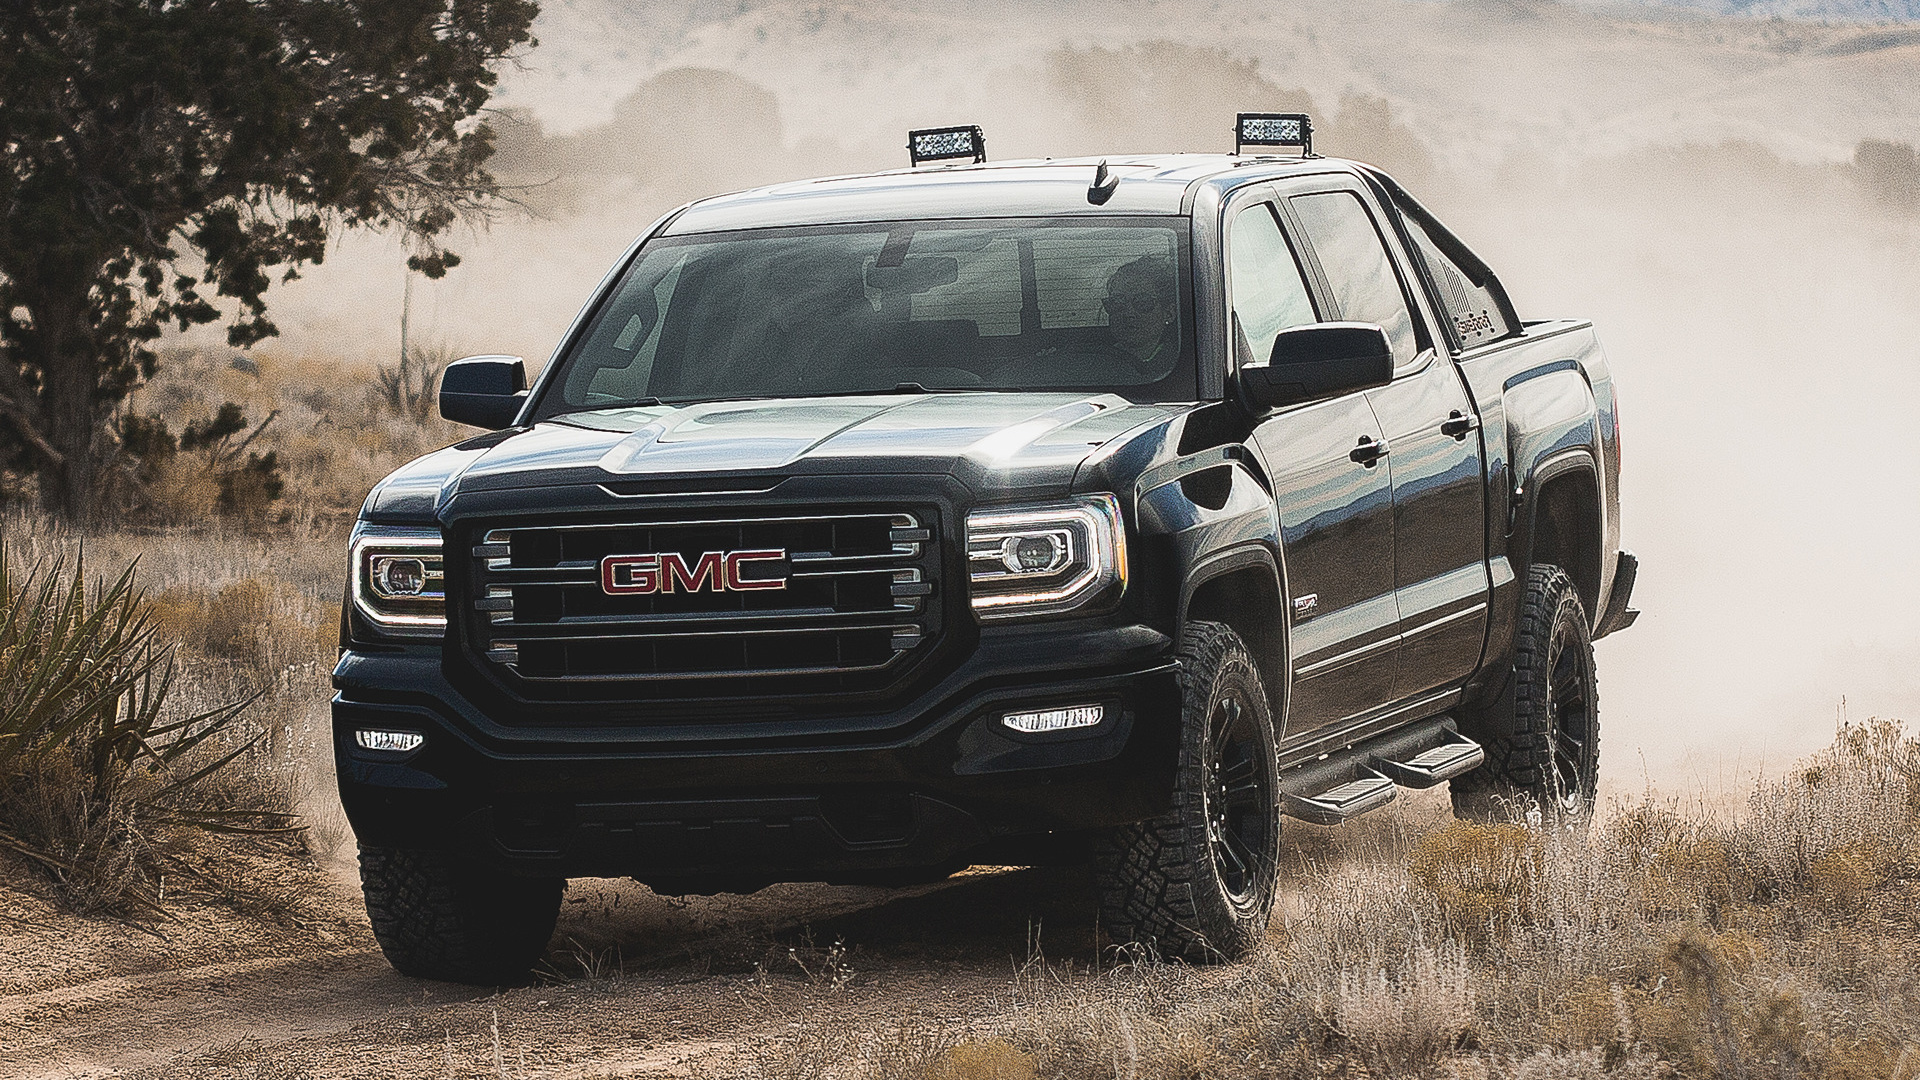 2016 Ram 2500 >> 2016 GMC Sierra 1500 All Terrain X Crew Cab - Wallpapers